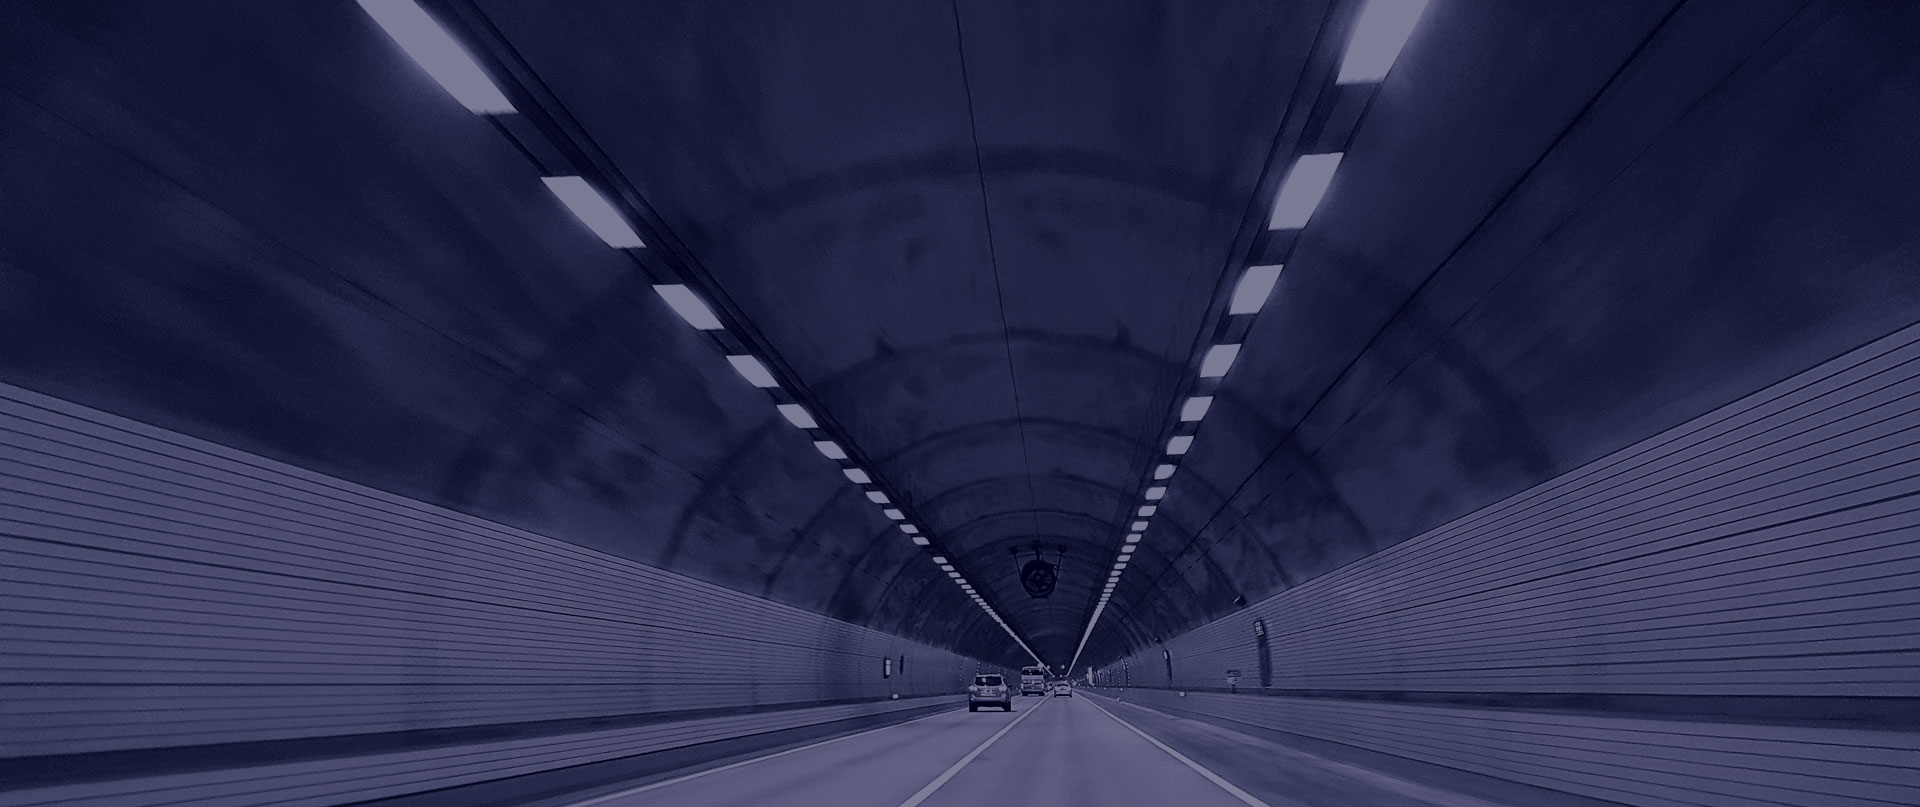 Tunnell